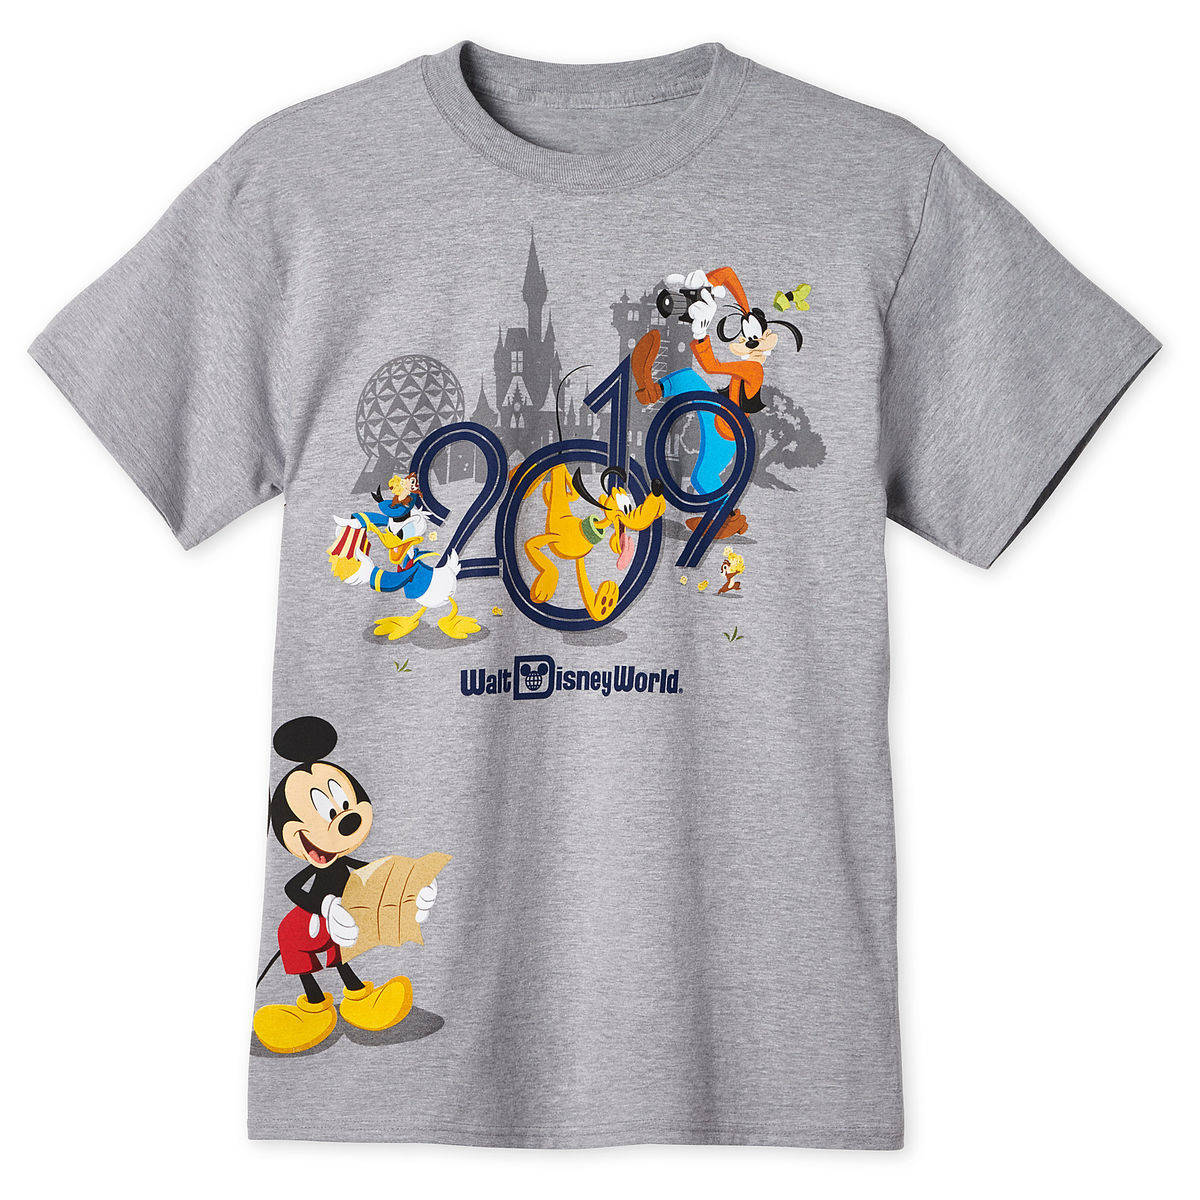 c9743d7ba Disney Adult Shirt - 2019 Mickey and Friends - Disney World Grey